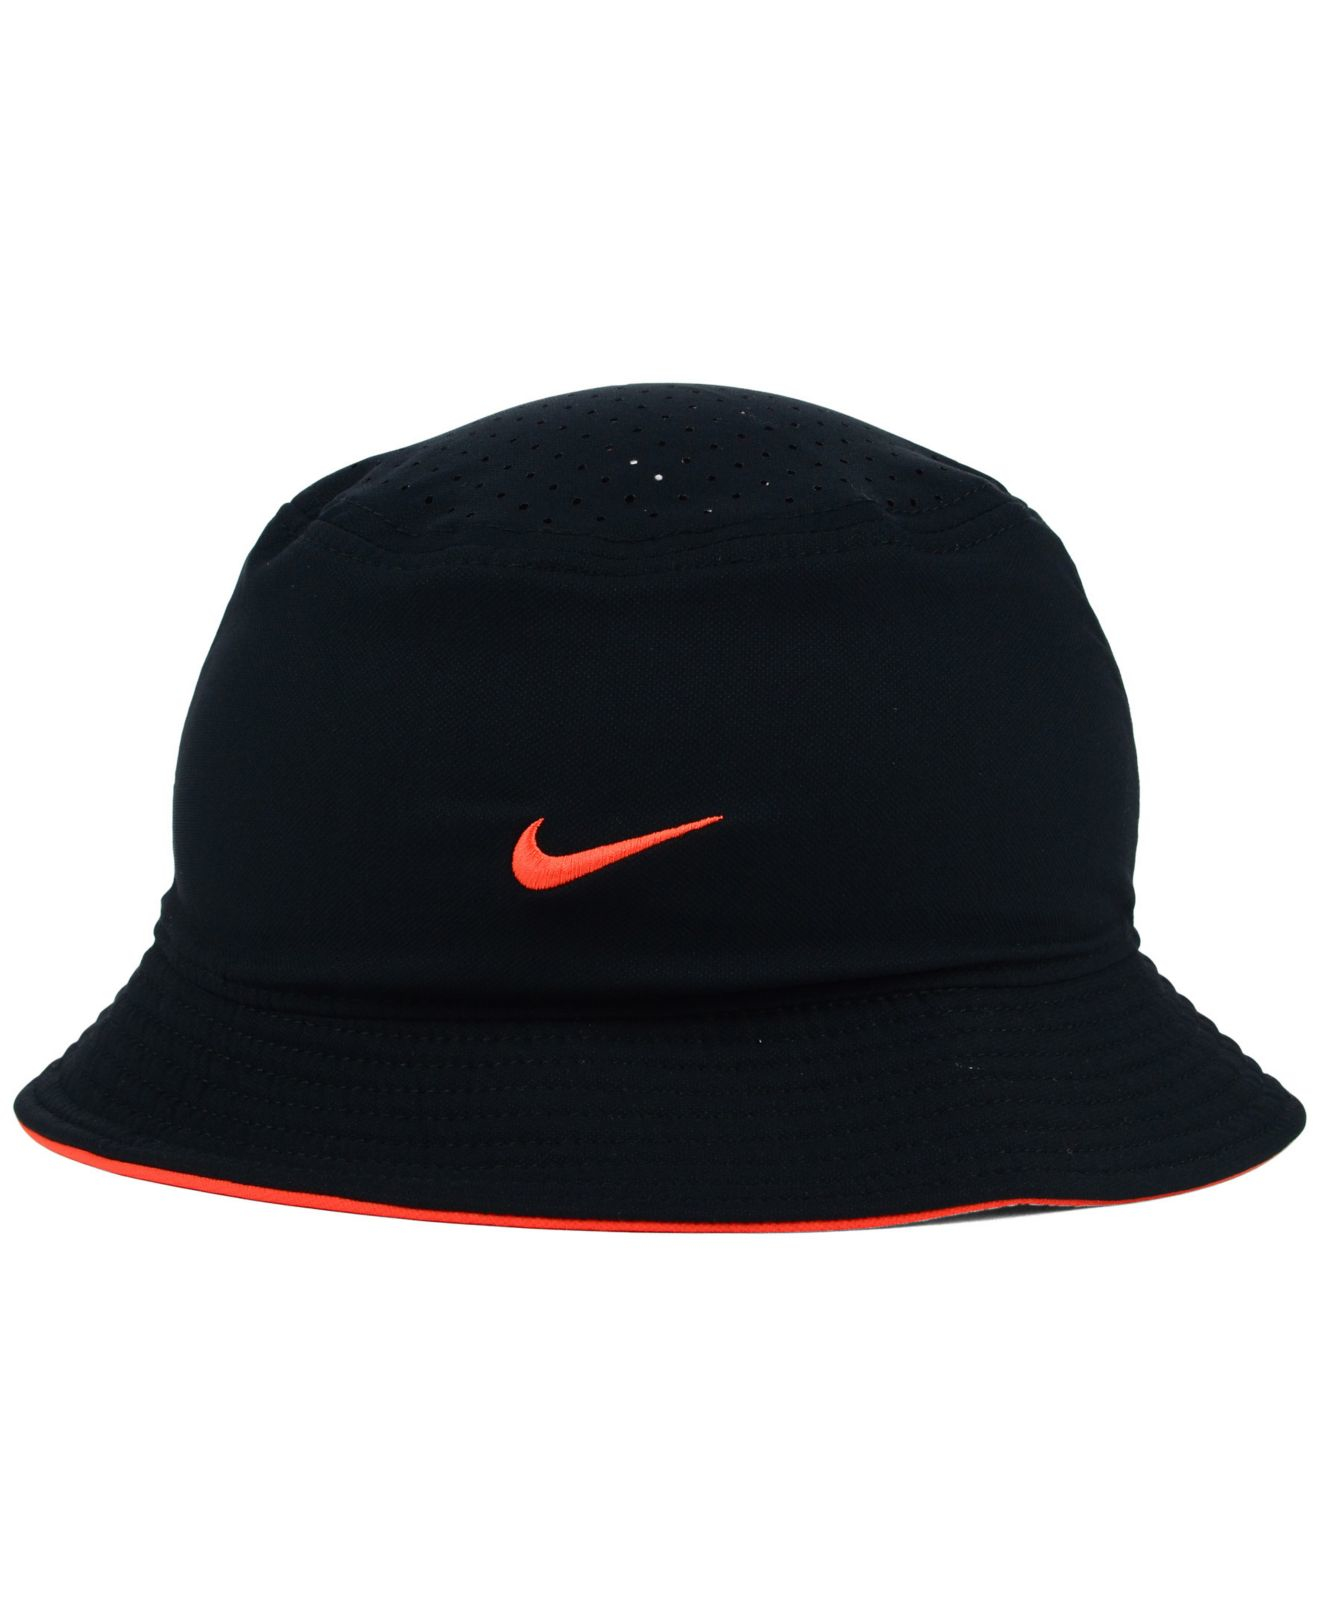 switzerland lyst nike san francisco giants vapor dri fit bucket hat in  black 921e4 120a5 baa3cc30bc0